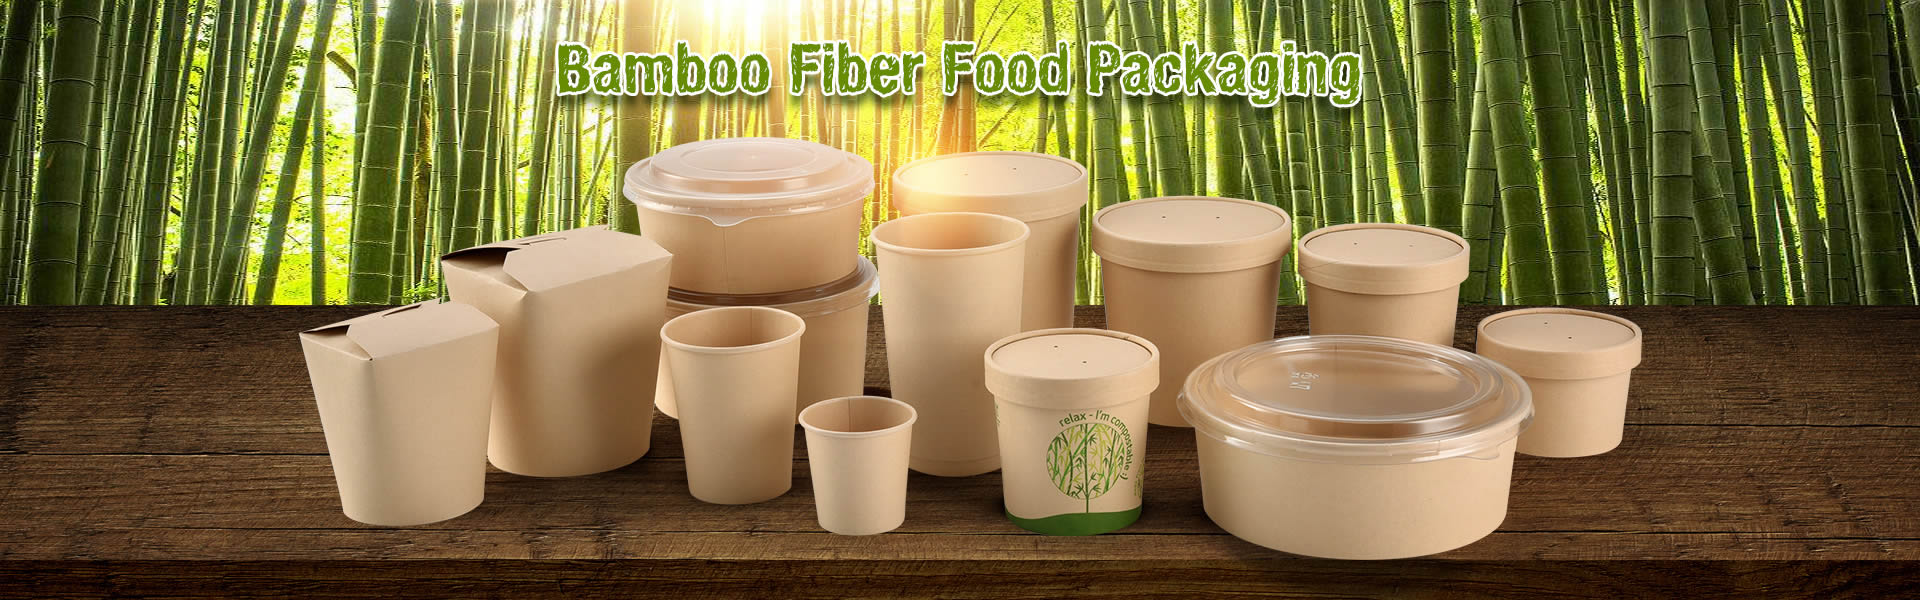 professional food packaging manufacturer food safe biodegradable